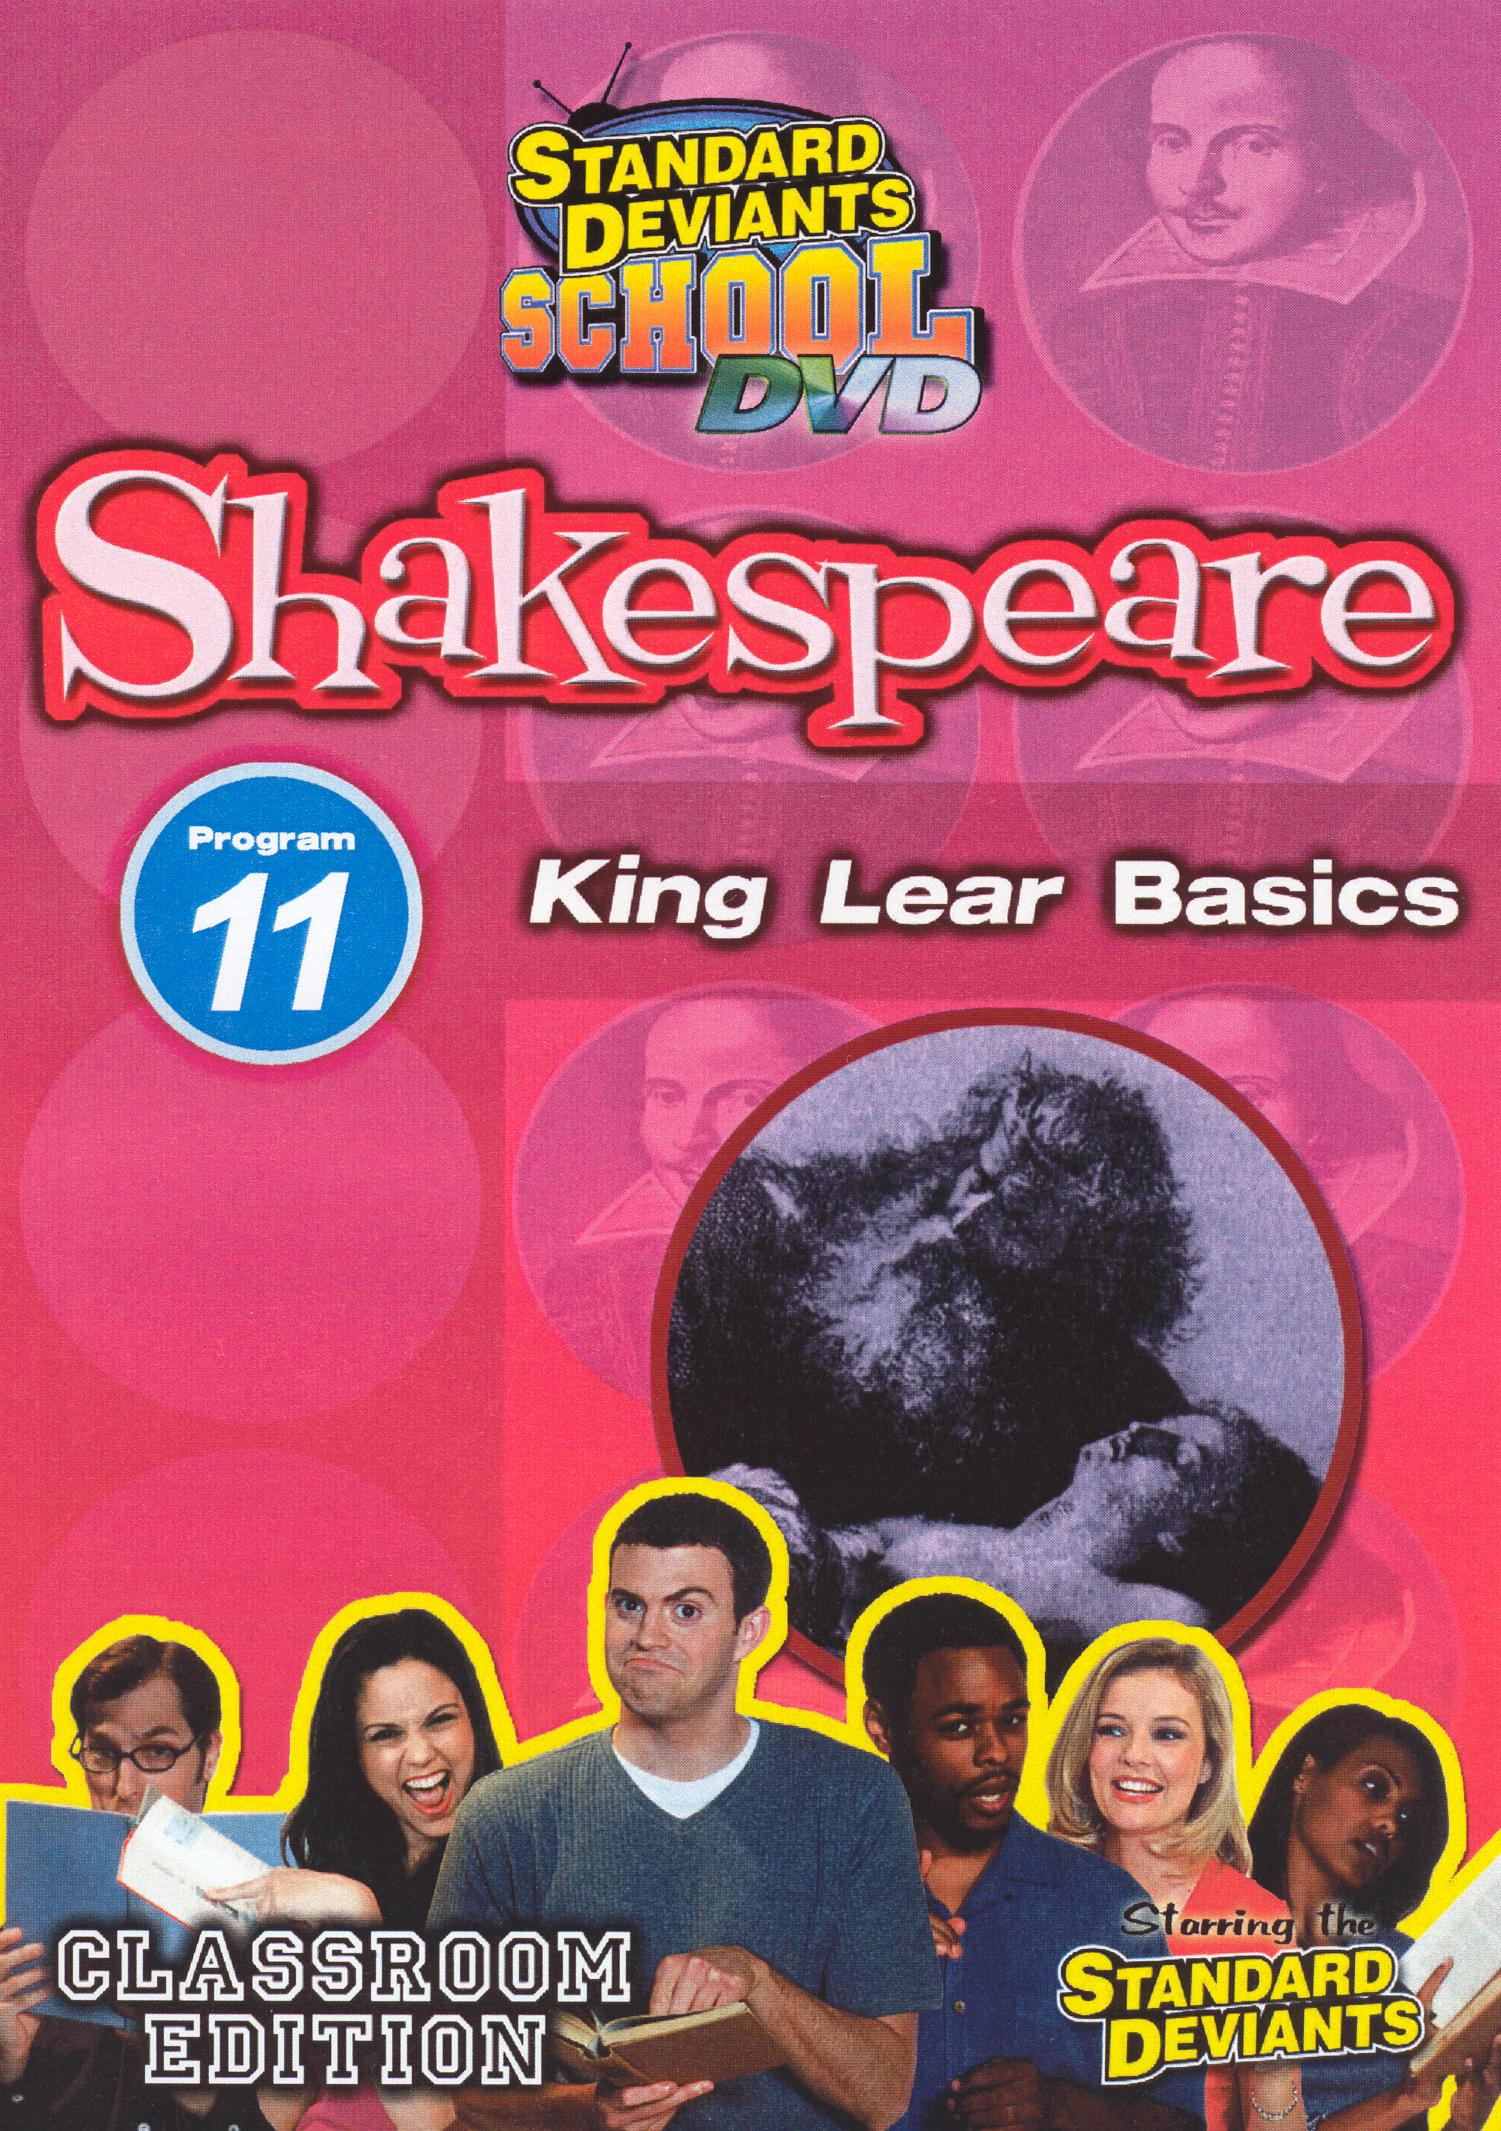 Standard Deviants School: Shakespeare, Program 11 - King Lear Basics